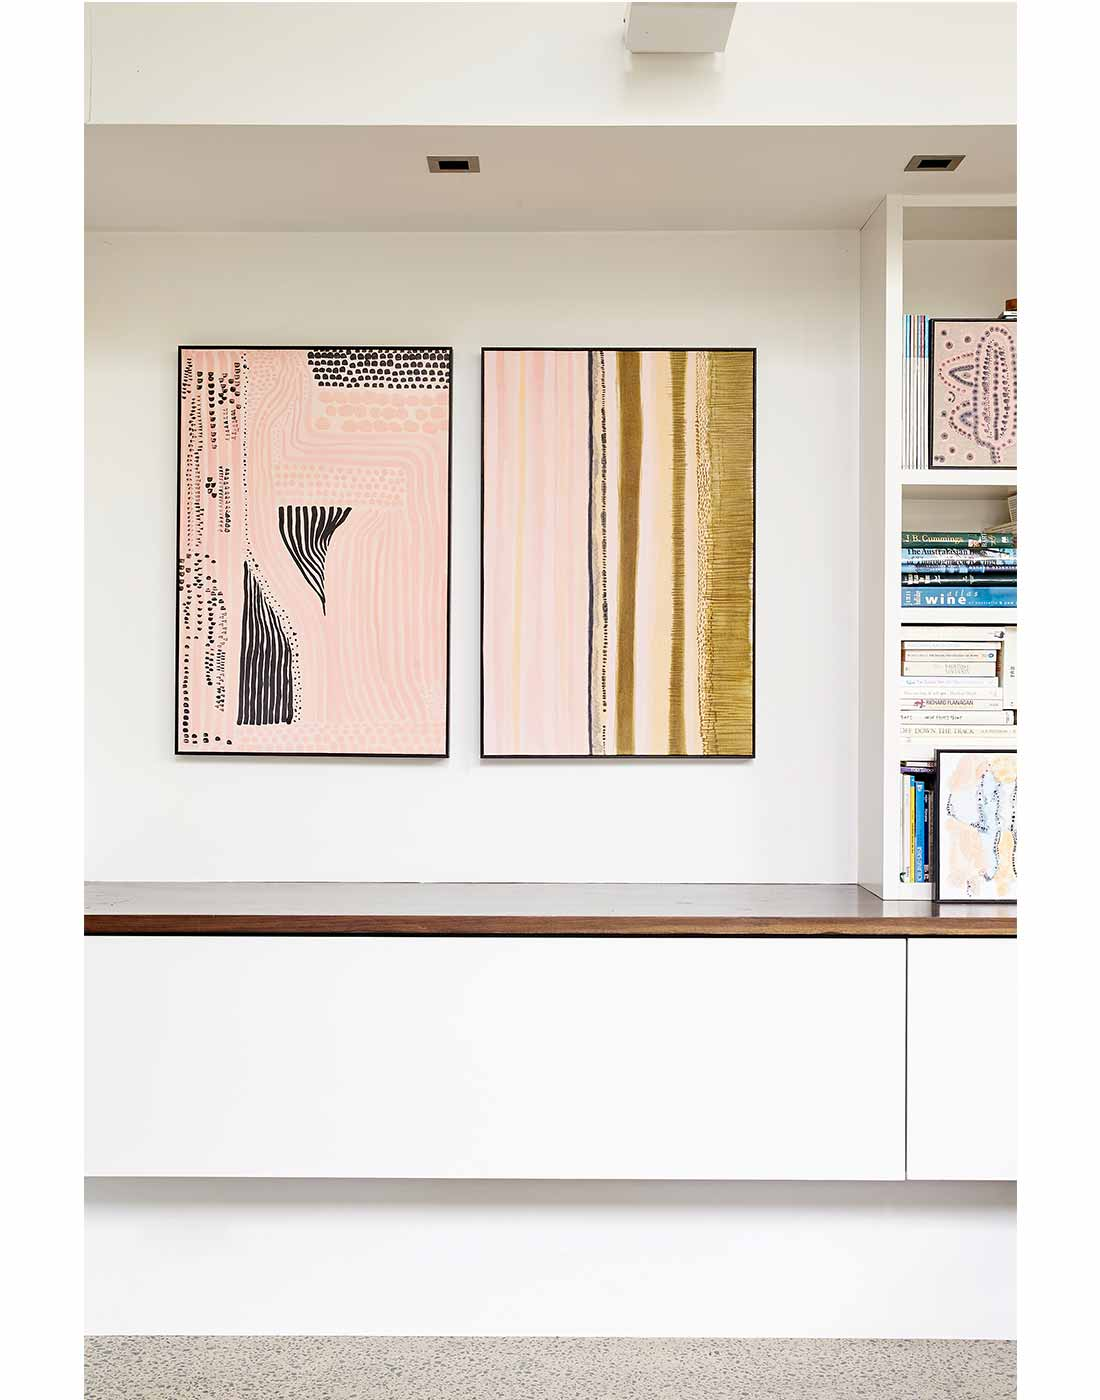 Pink Series Diptych framed in Black